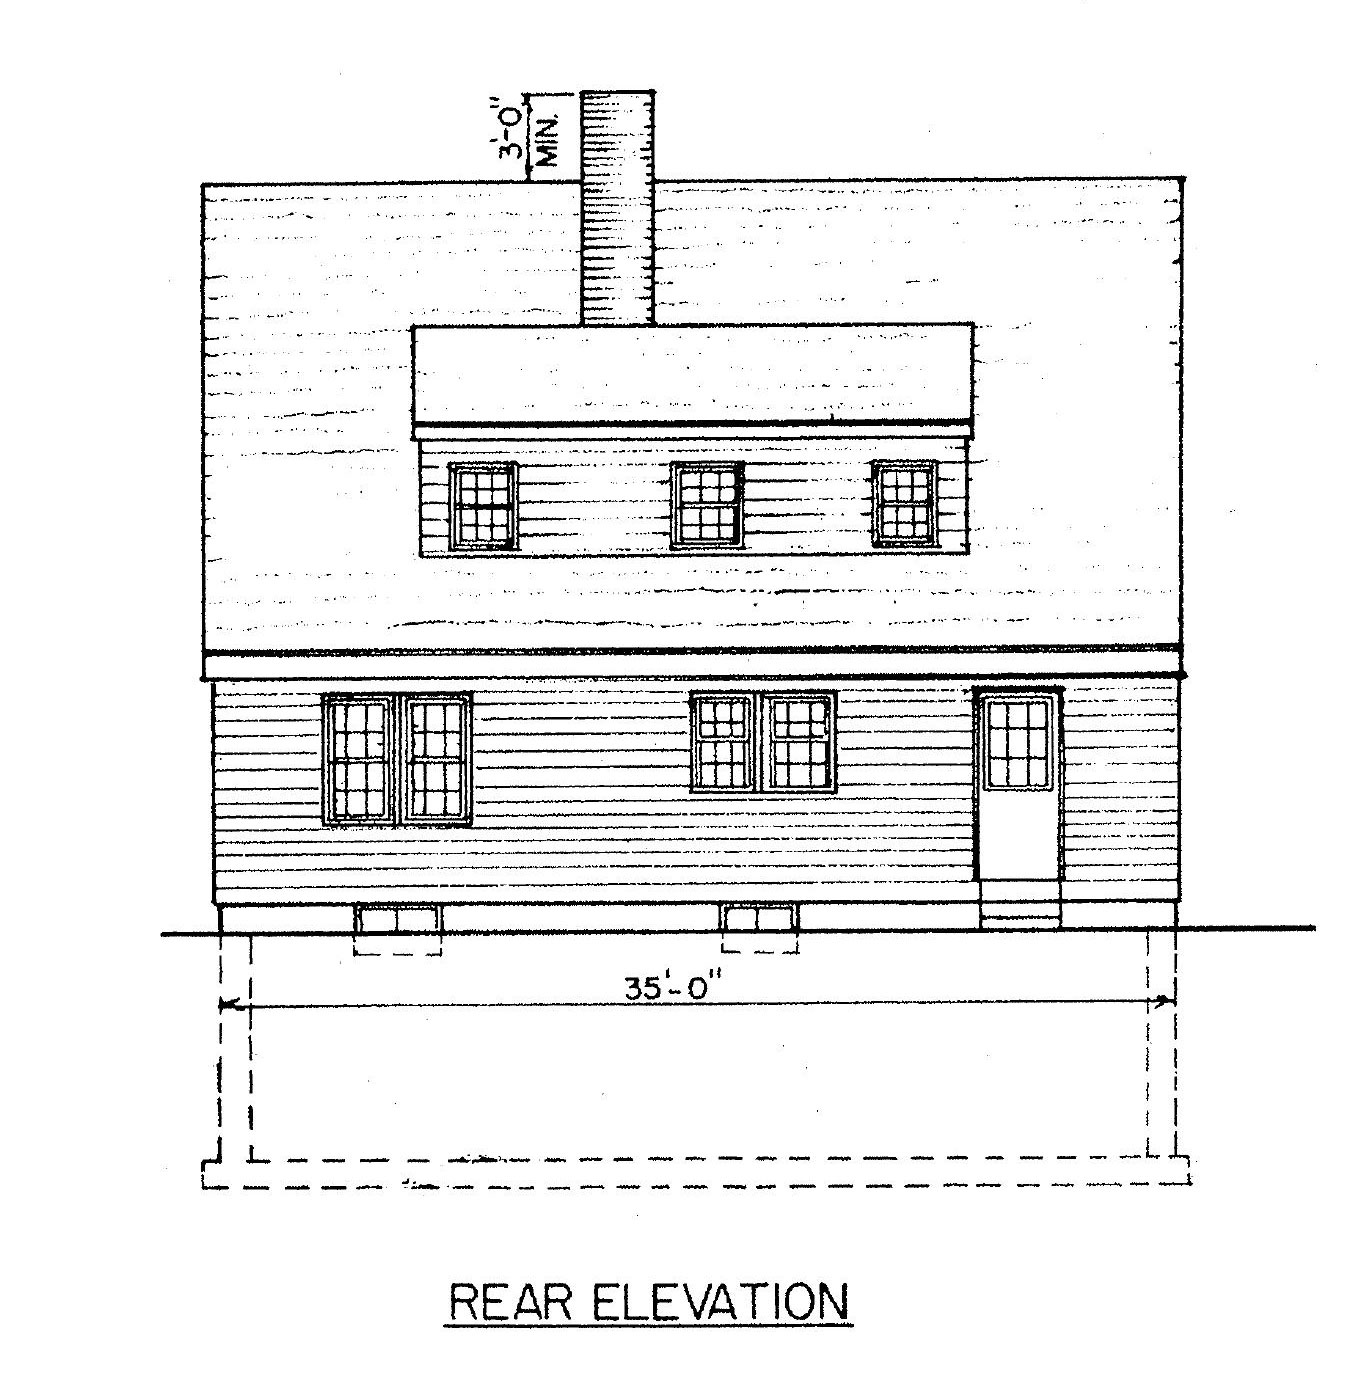 Free saltbox house plans saltbox house floor plans for Saltbox house plans designs